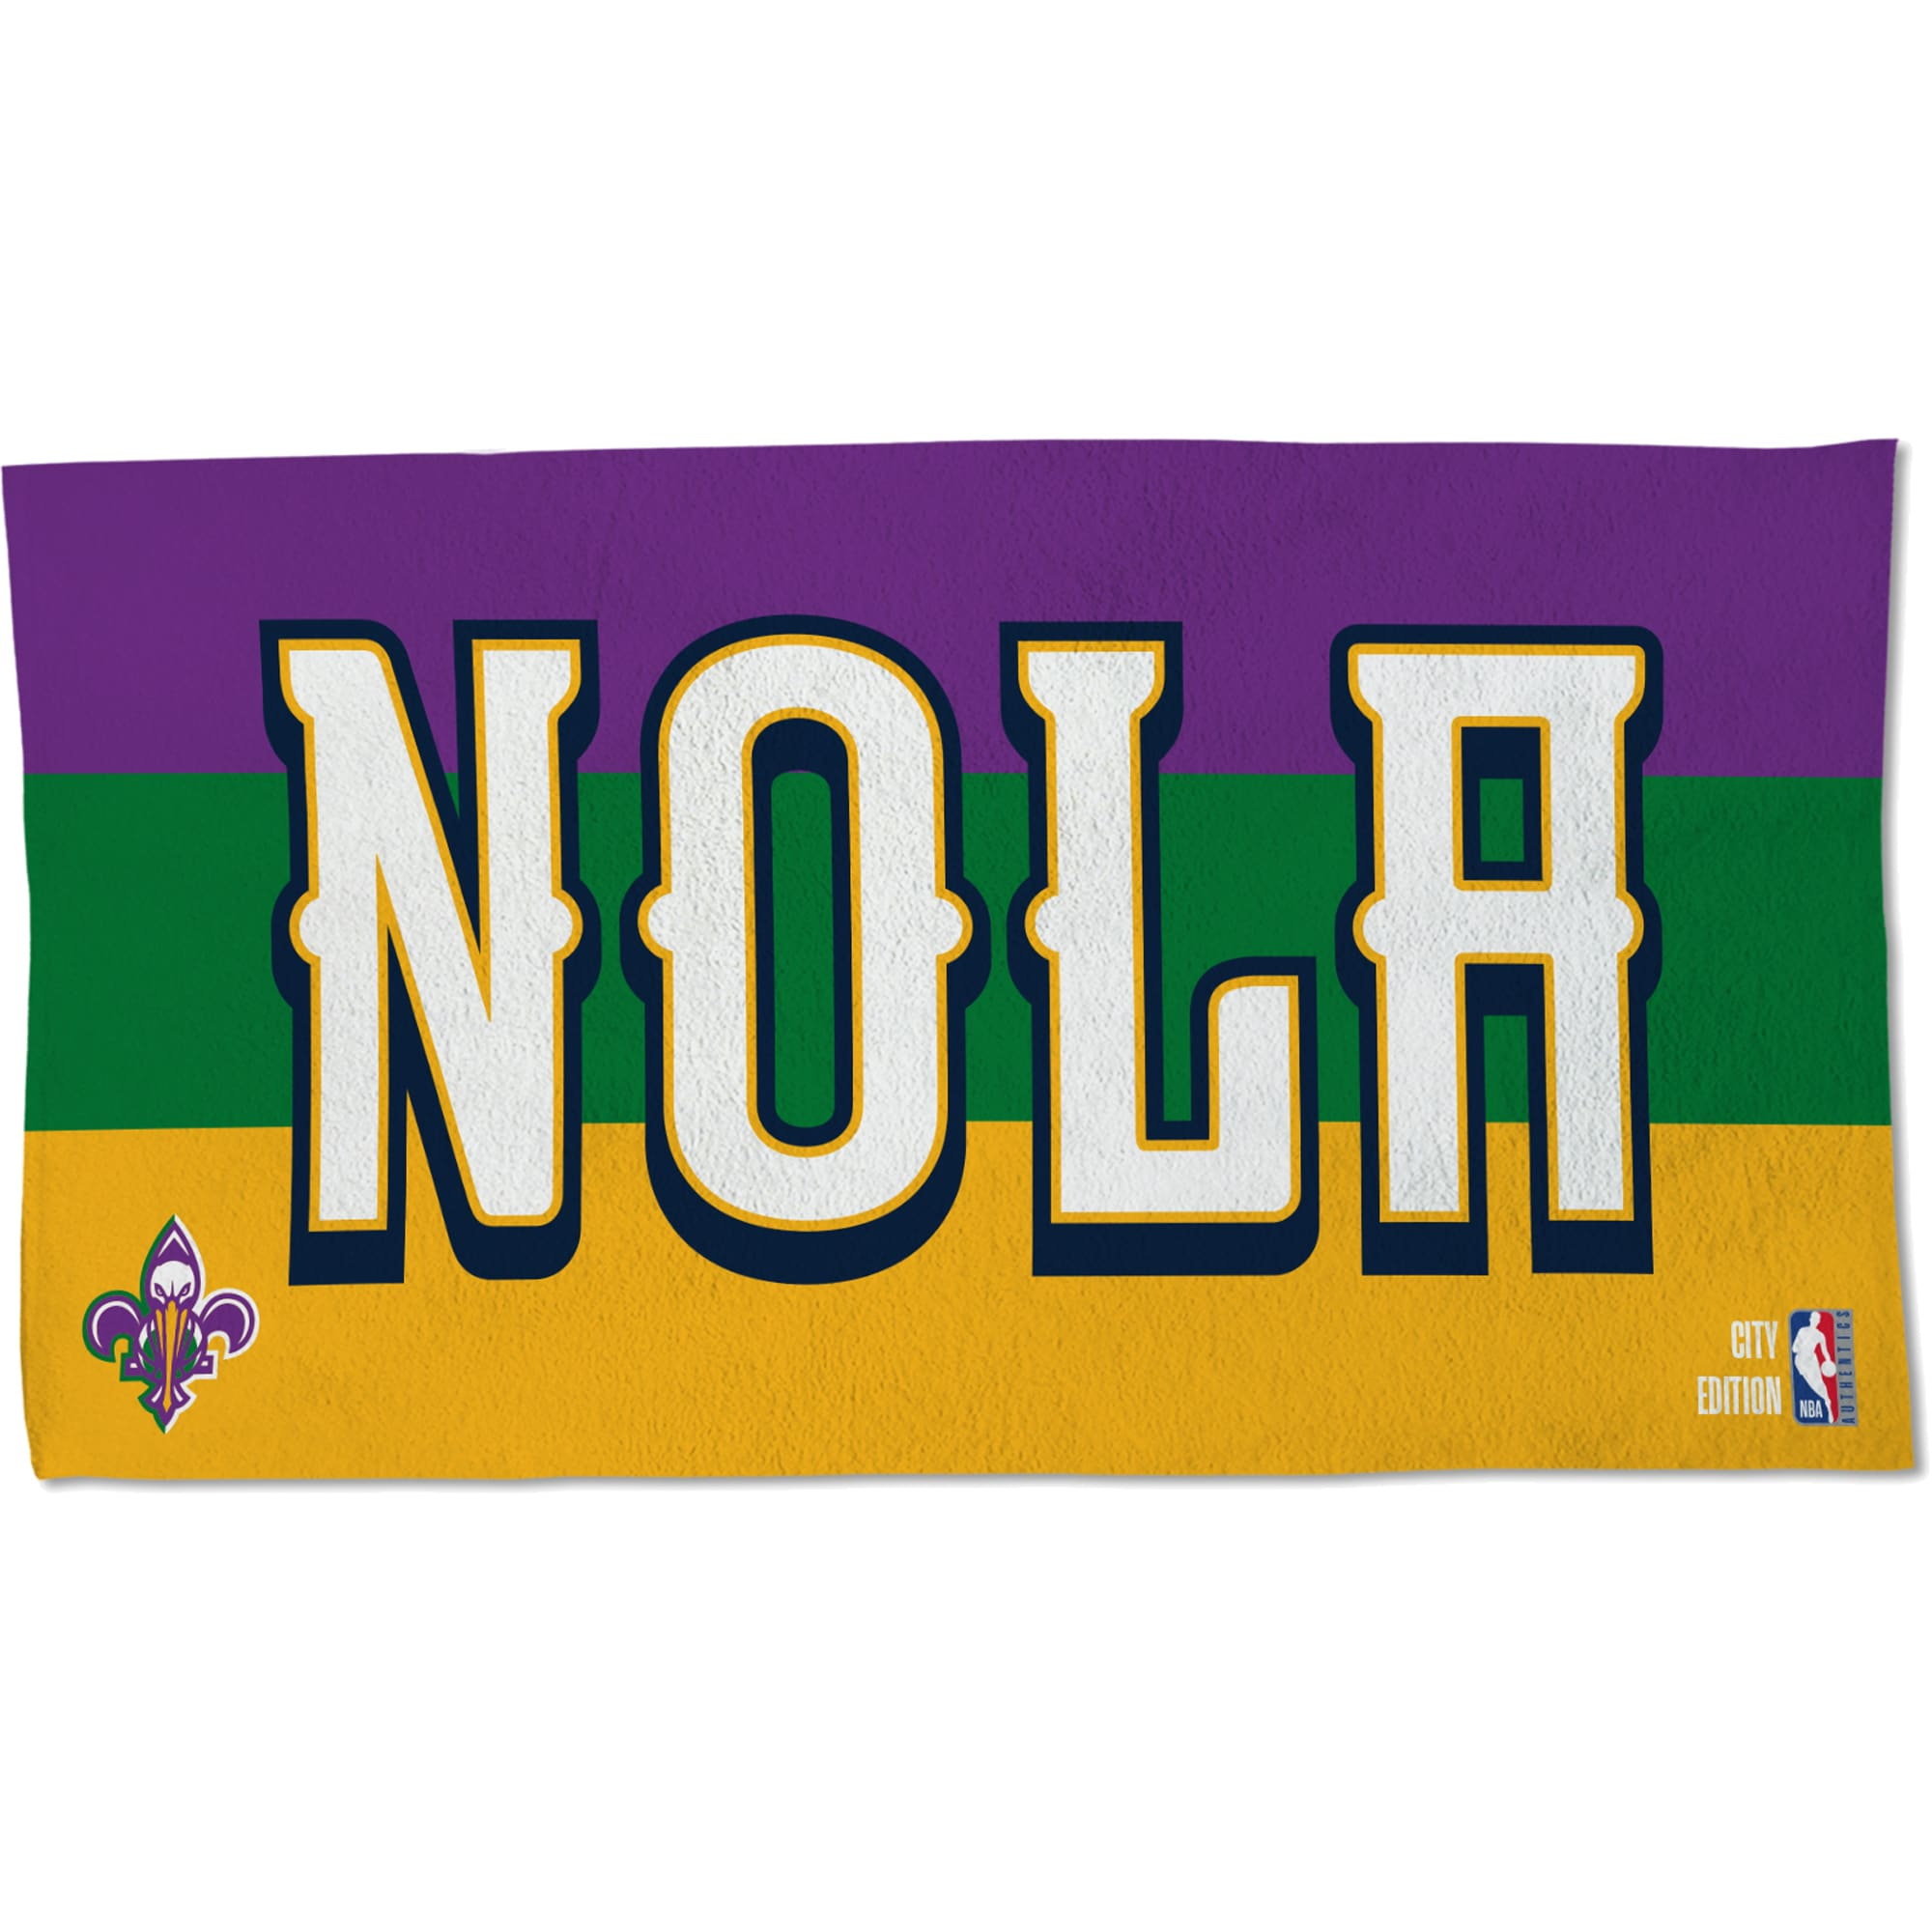 New Orleans Pelicans WinCraft 2019/20 City Edition 22'' x 42'' Official Locker Room Towel